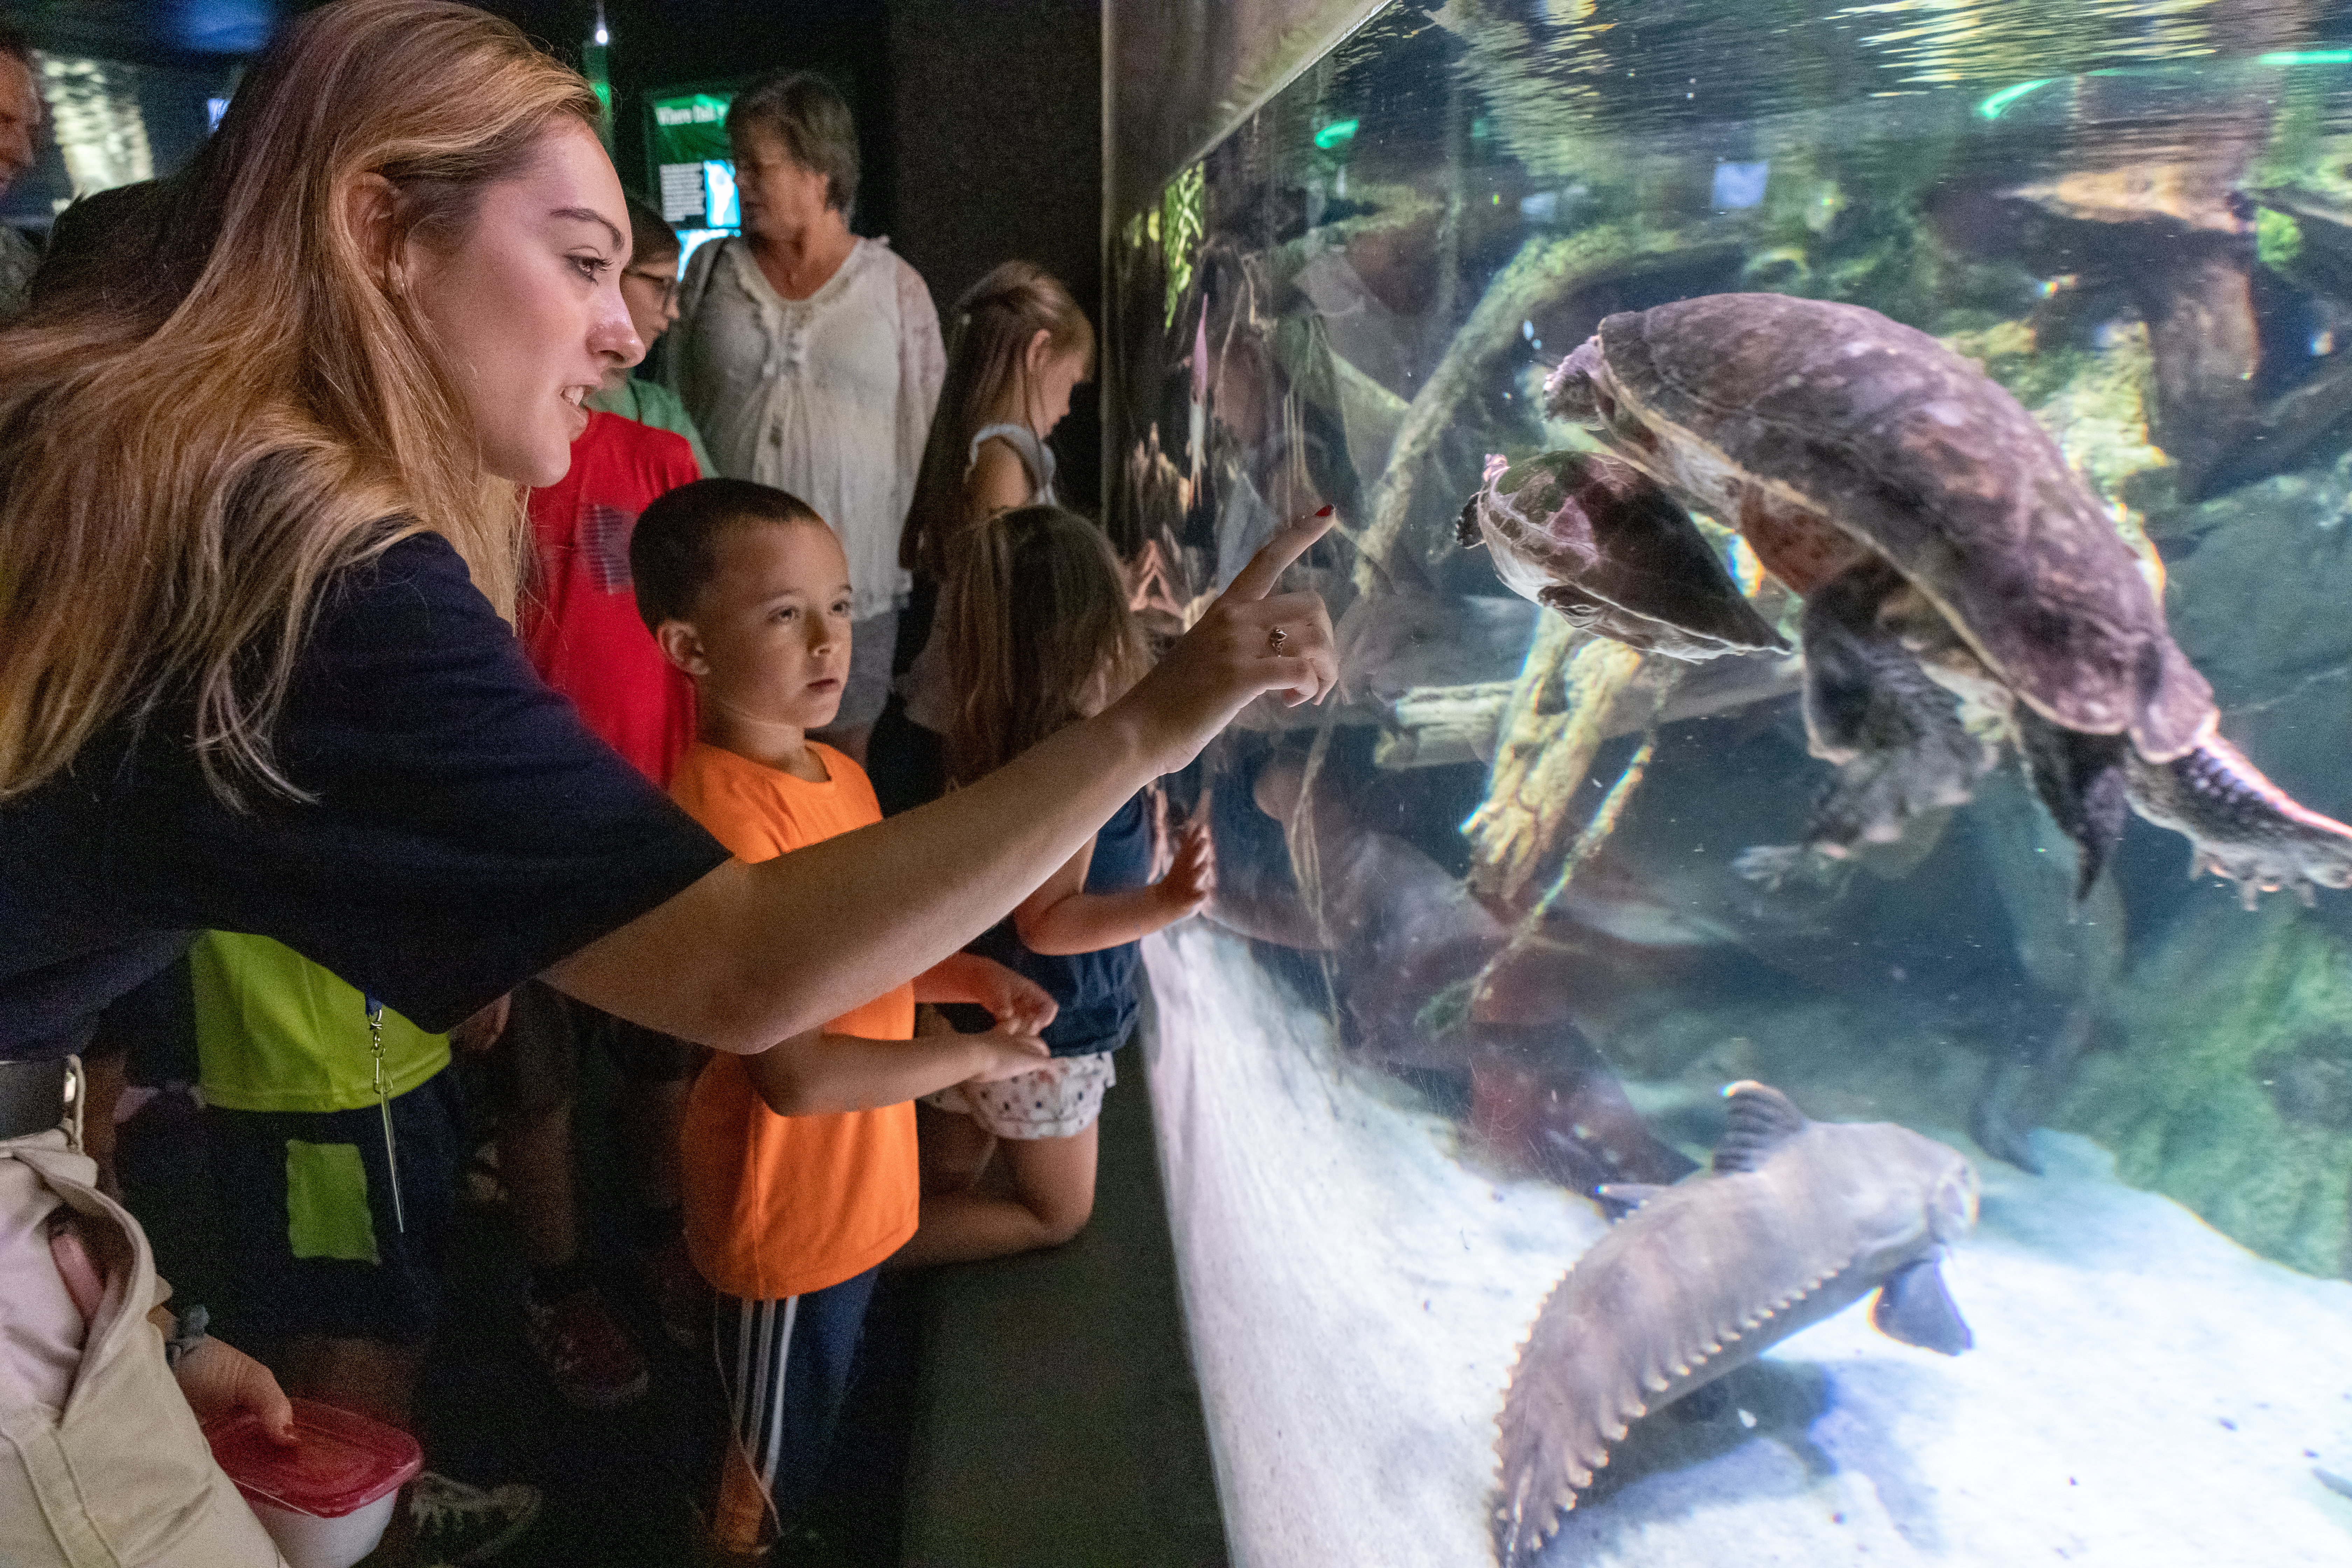 A camp counselor and camper look at turtles in an exhibit at the National Aquarium